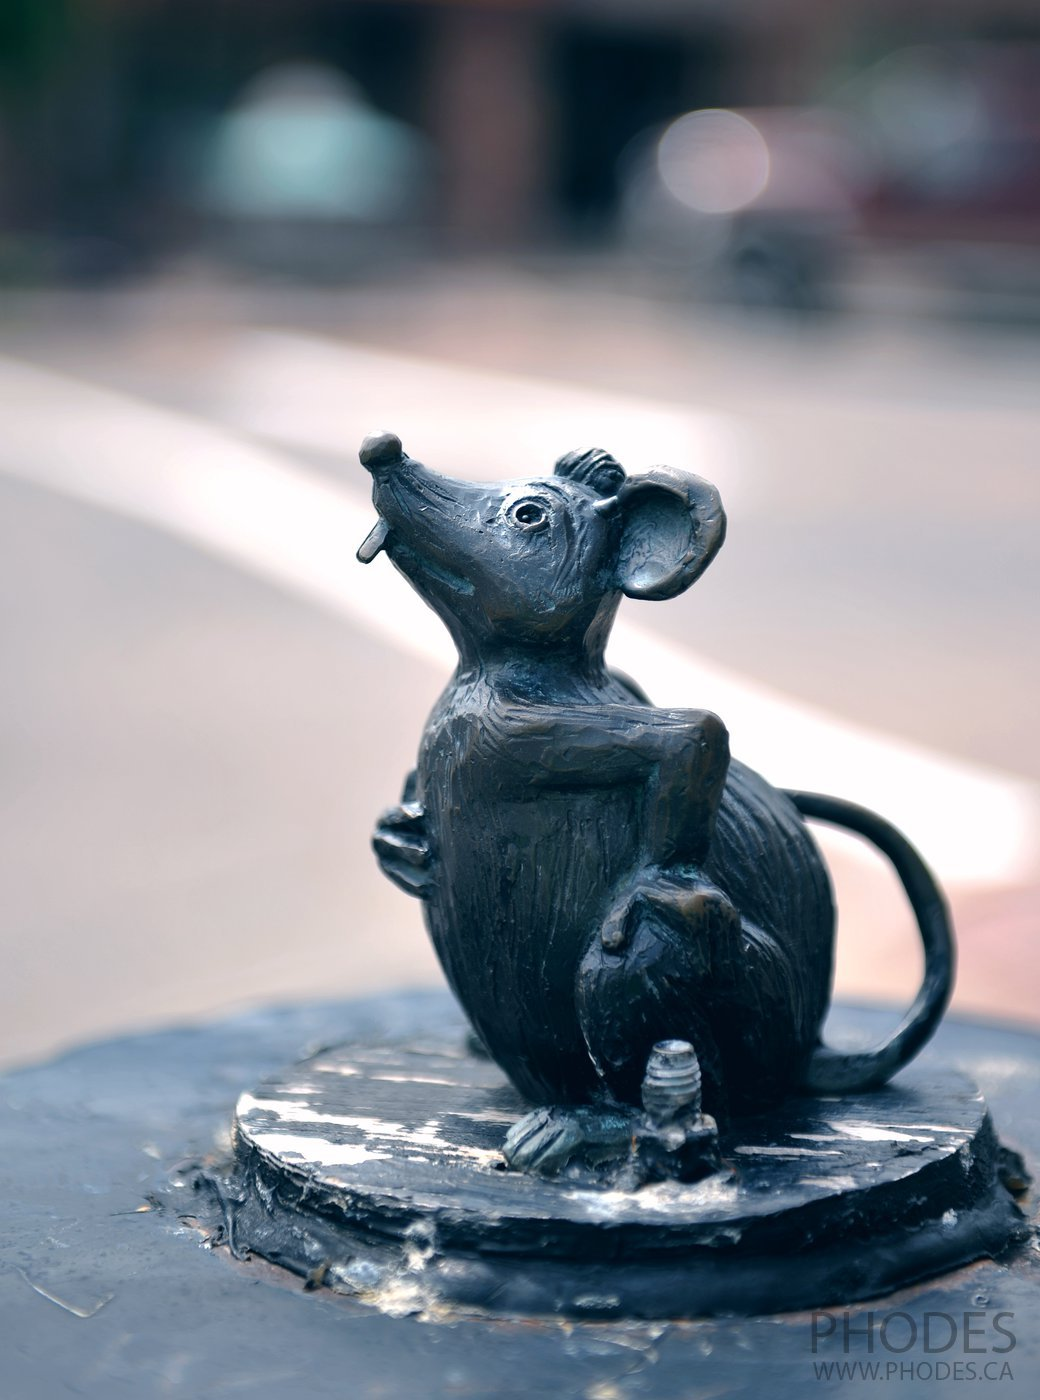 Eckhart mouse statue in Charlottetown